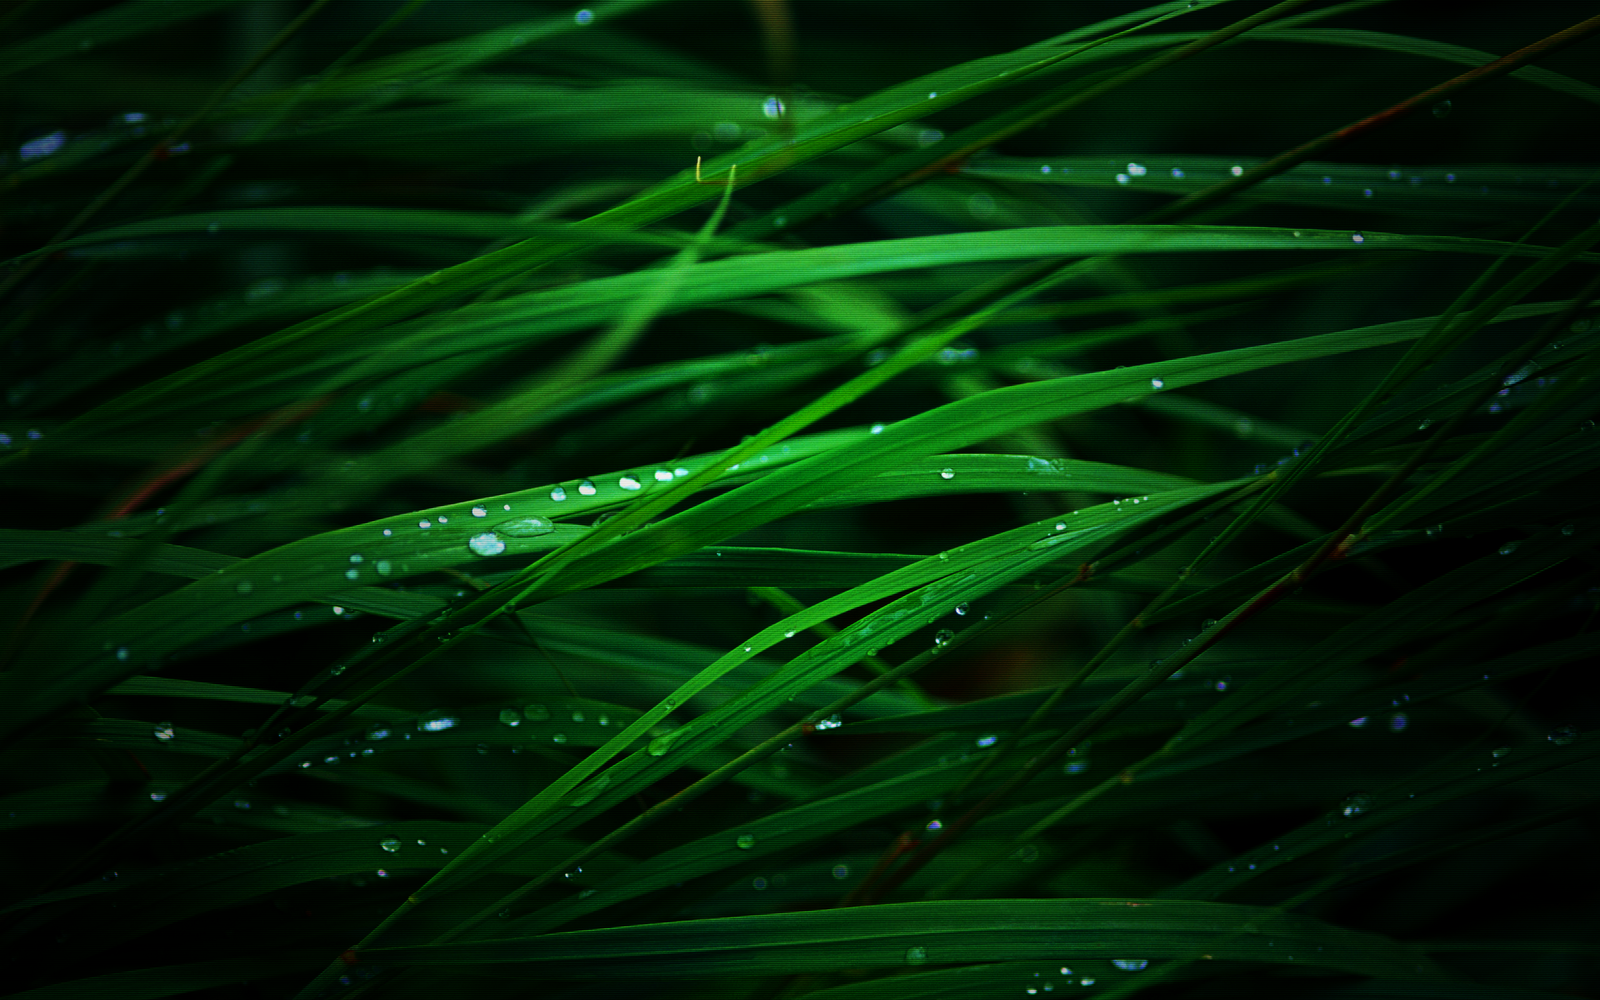 Rain_Drops_on_Leaf_HD_Wallpaper_www